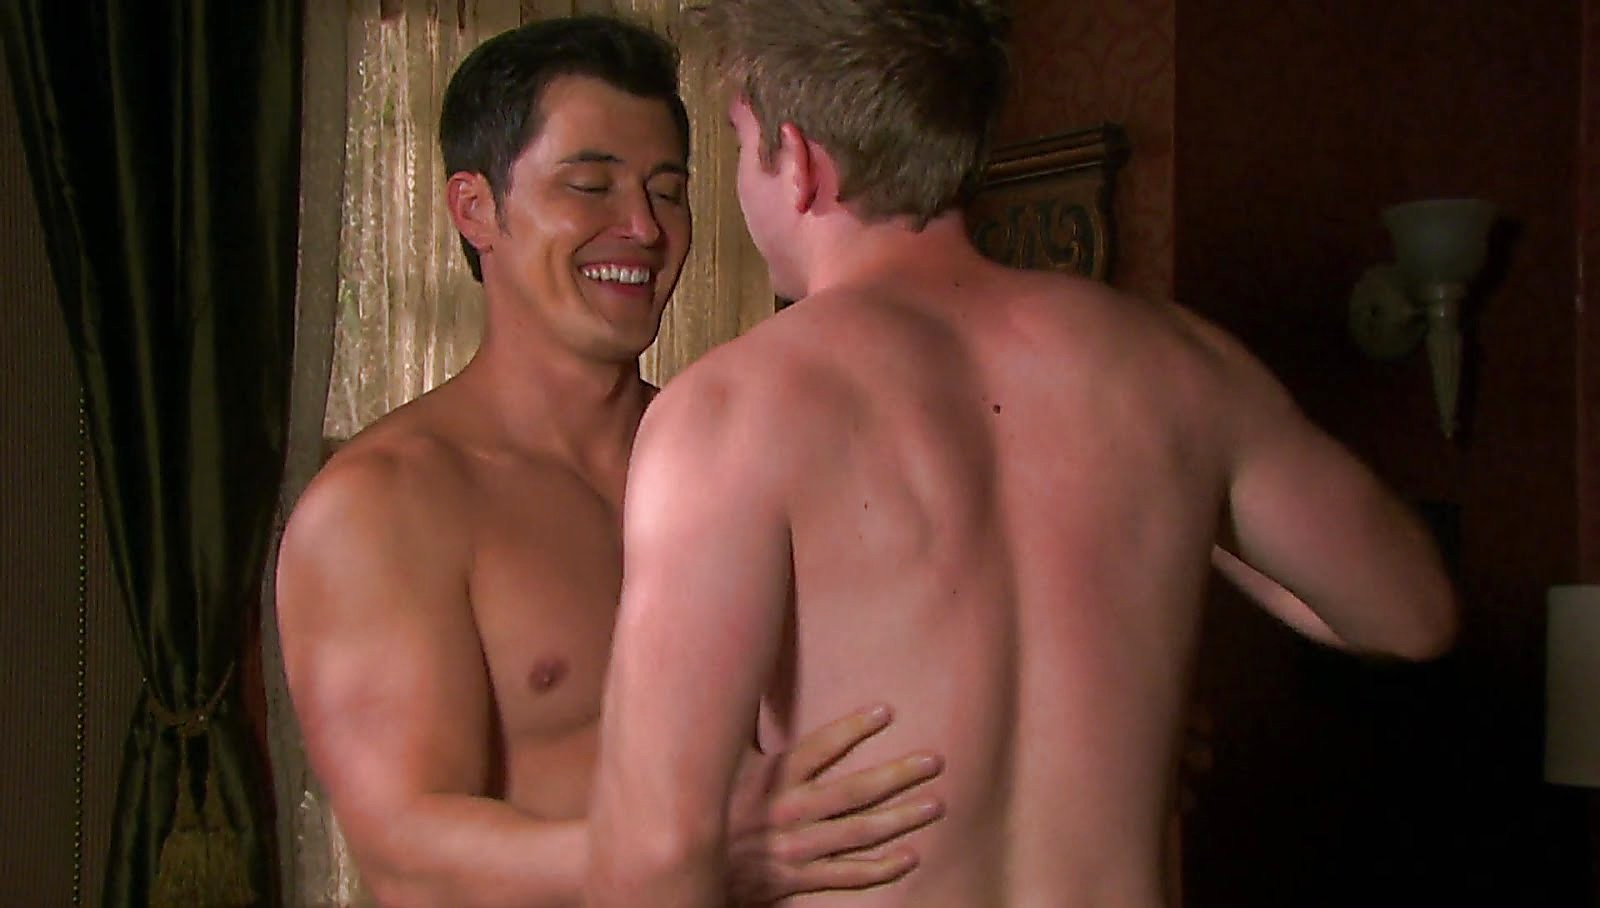 Chandler Massey sexy shirtless scene March 30, 2018, 11am